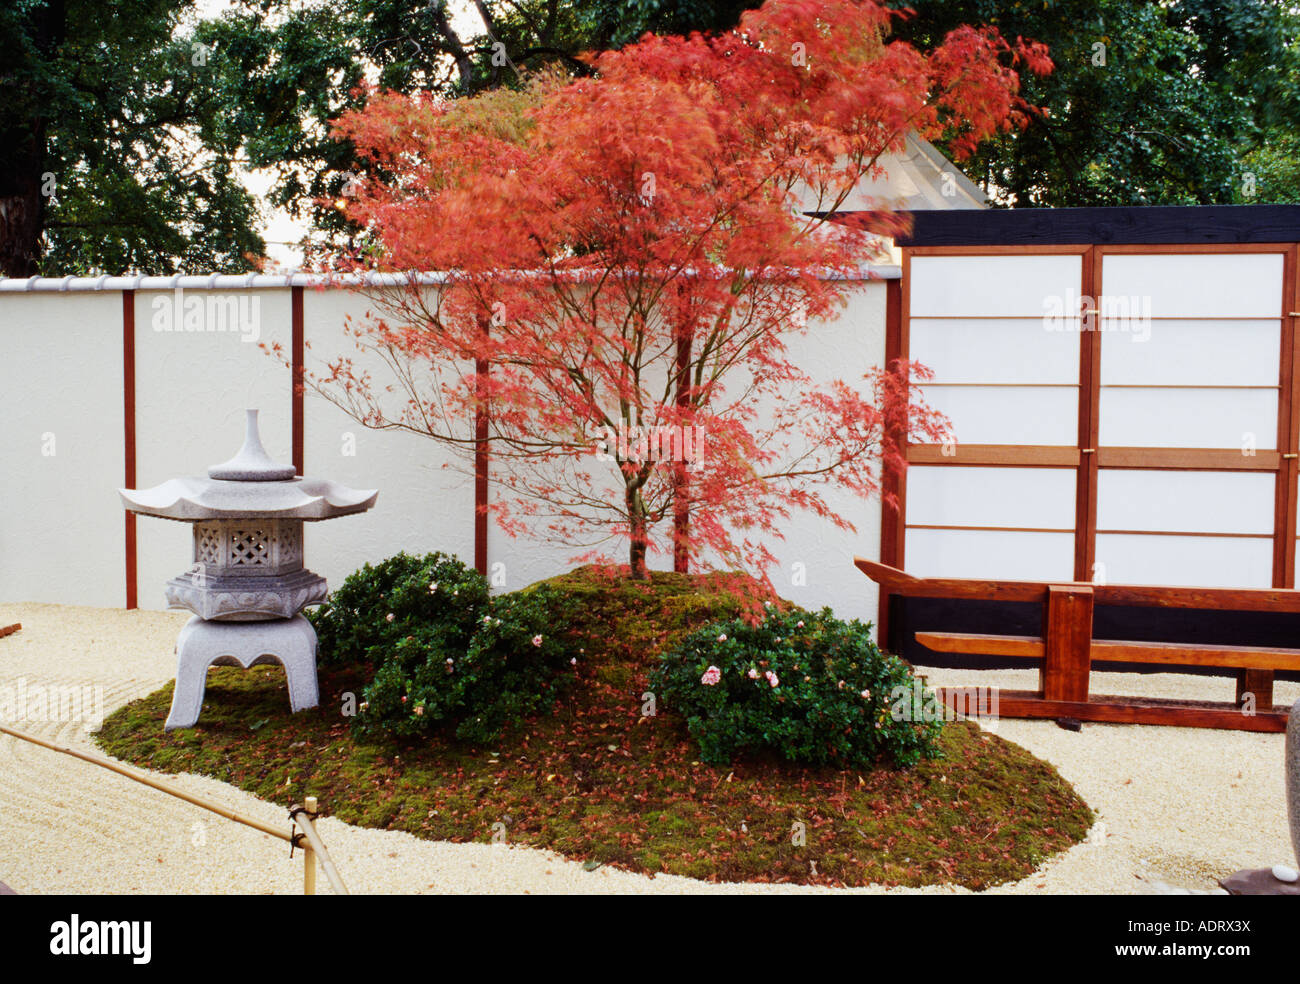 Beau Red Acer Palmatum And Japanese Stone Lantern In Oriental Gravel Garden With  White Fence